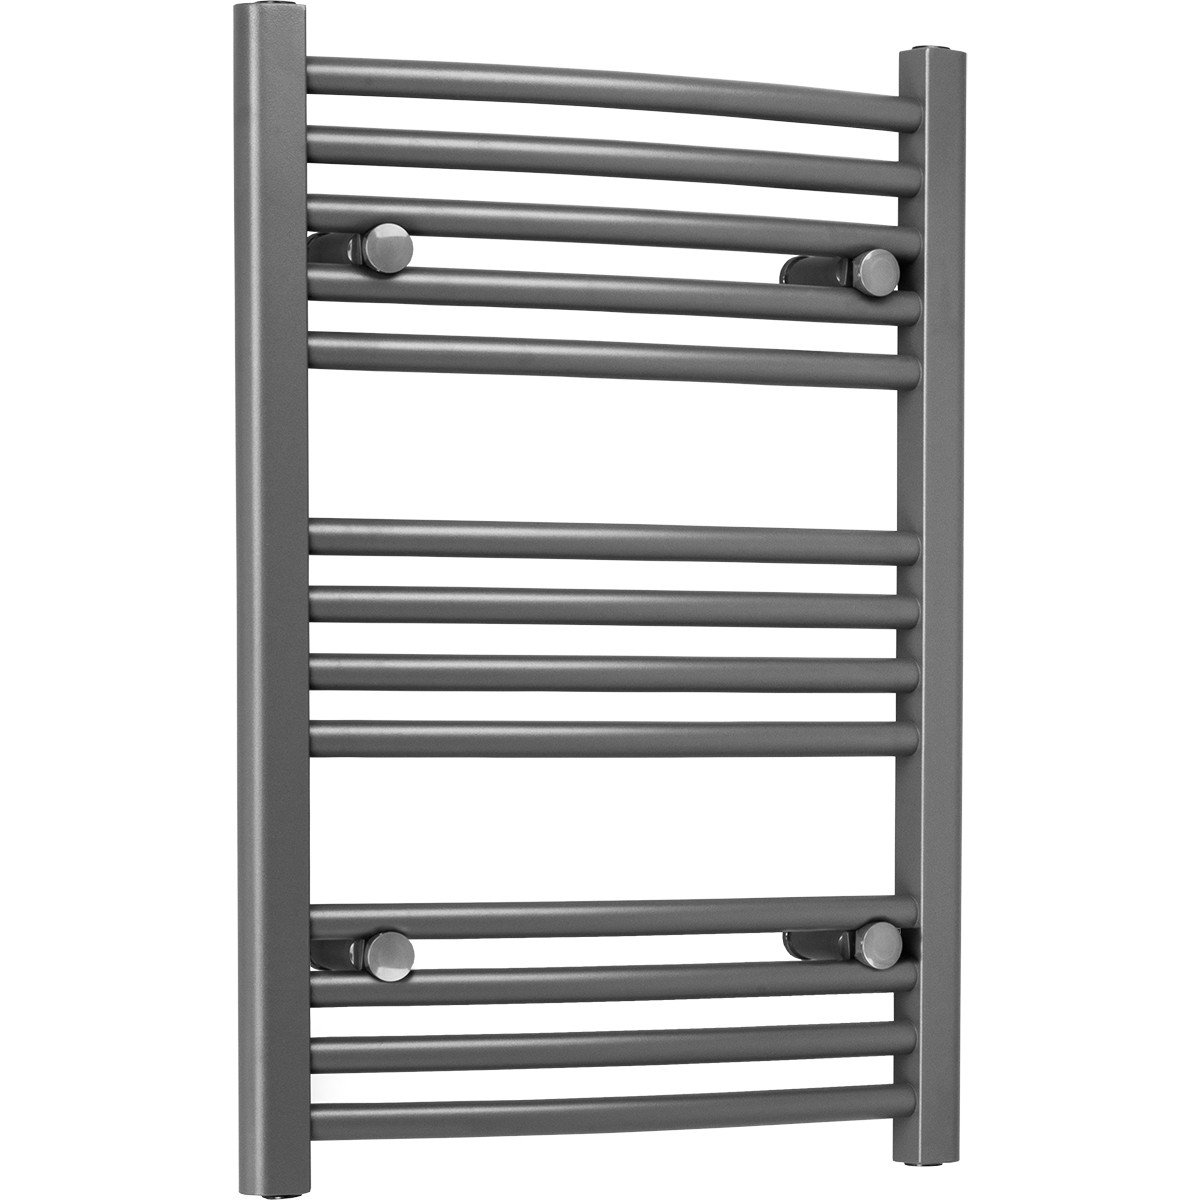 Marco 700 x 500 Curved Grey Heated Towel Rail